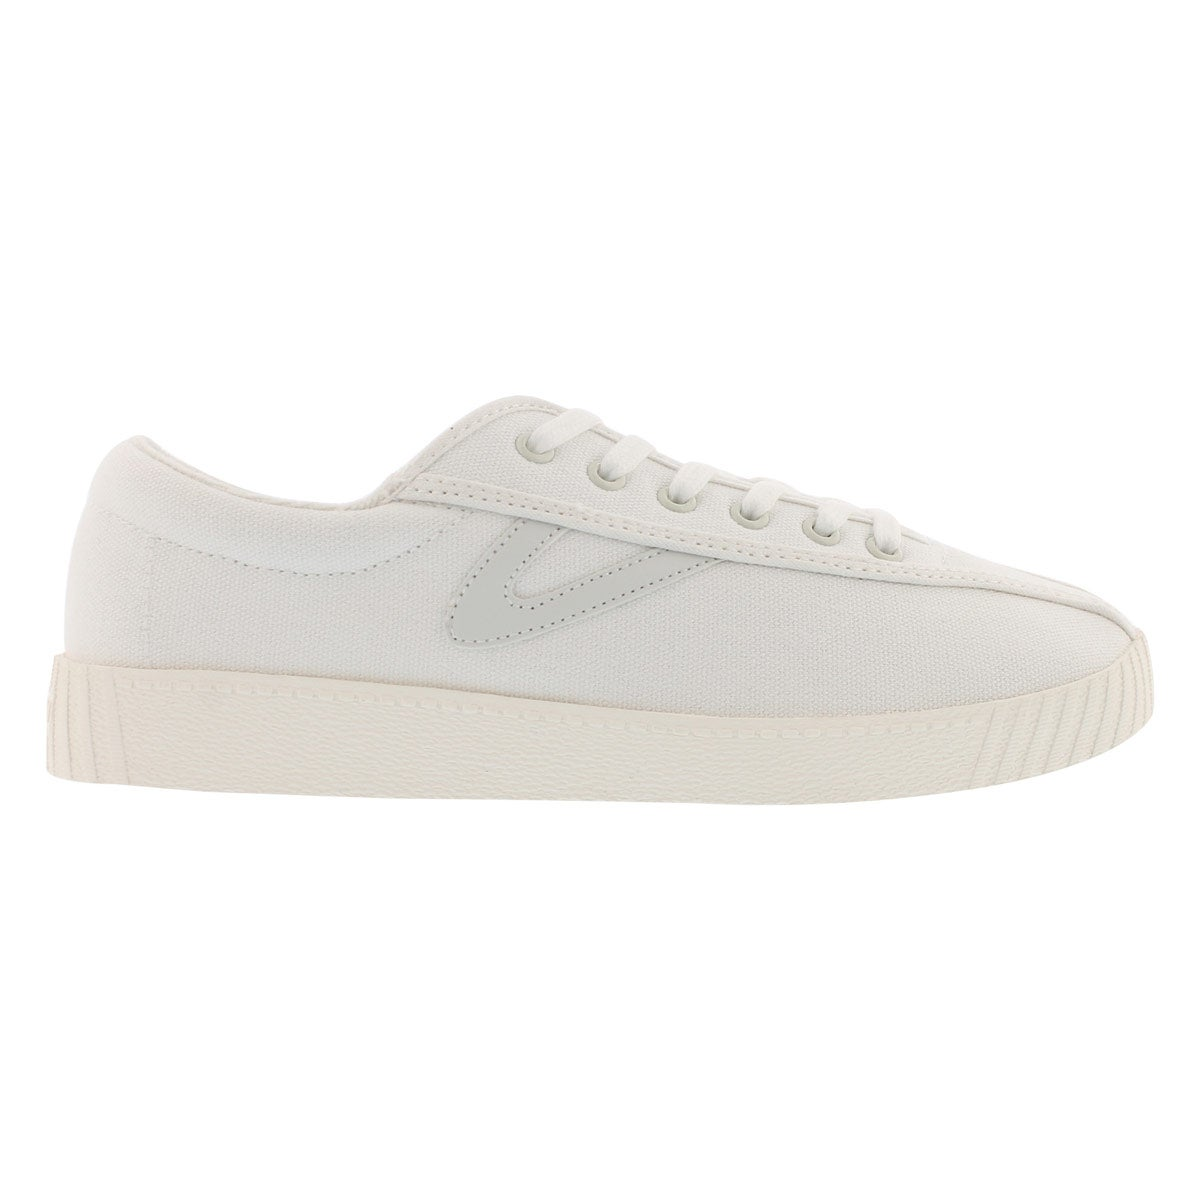 Lds Nylite Plus white sneaker